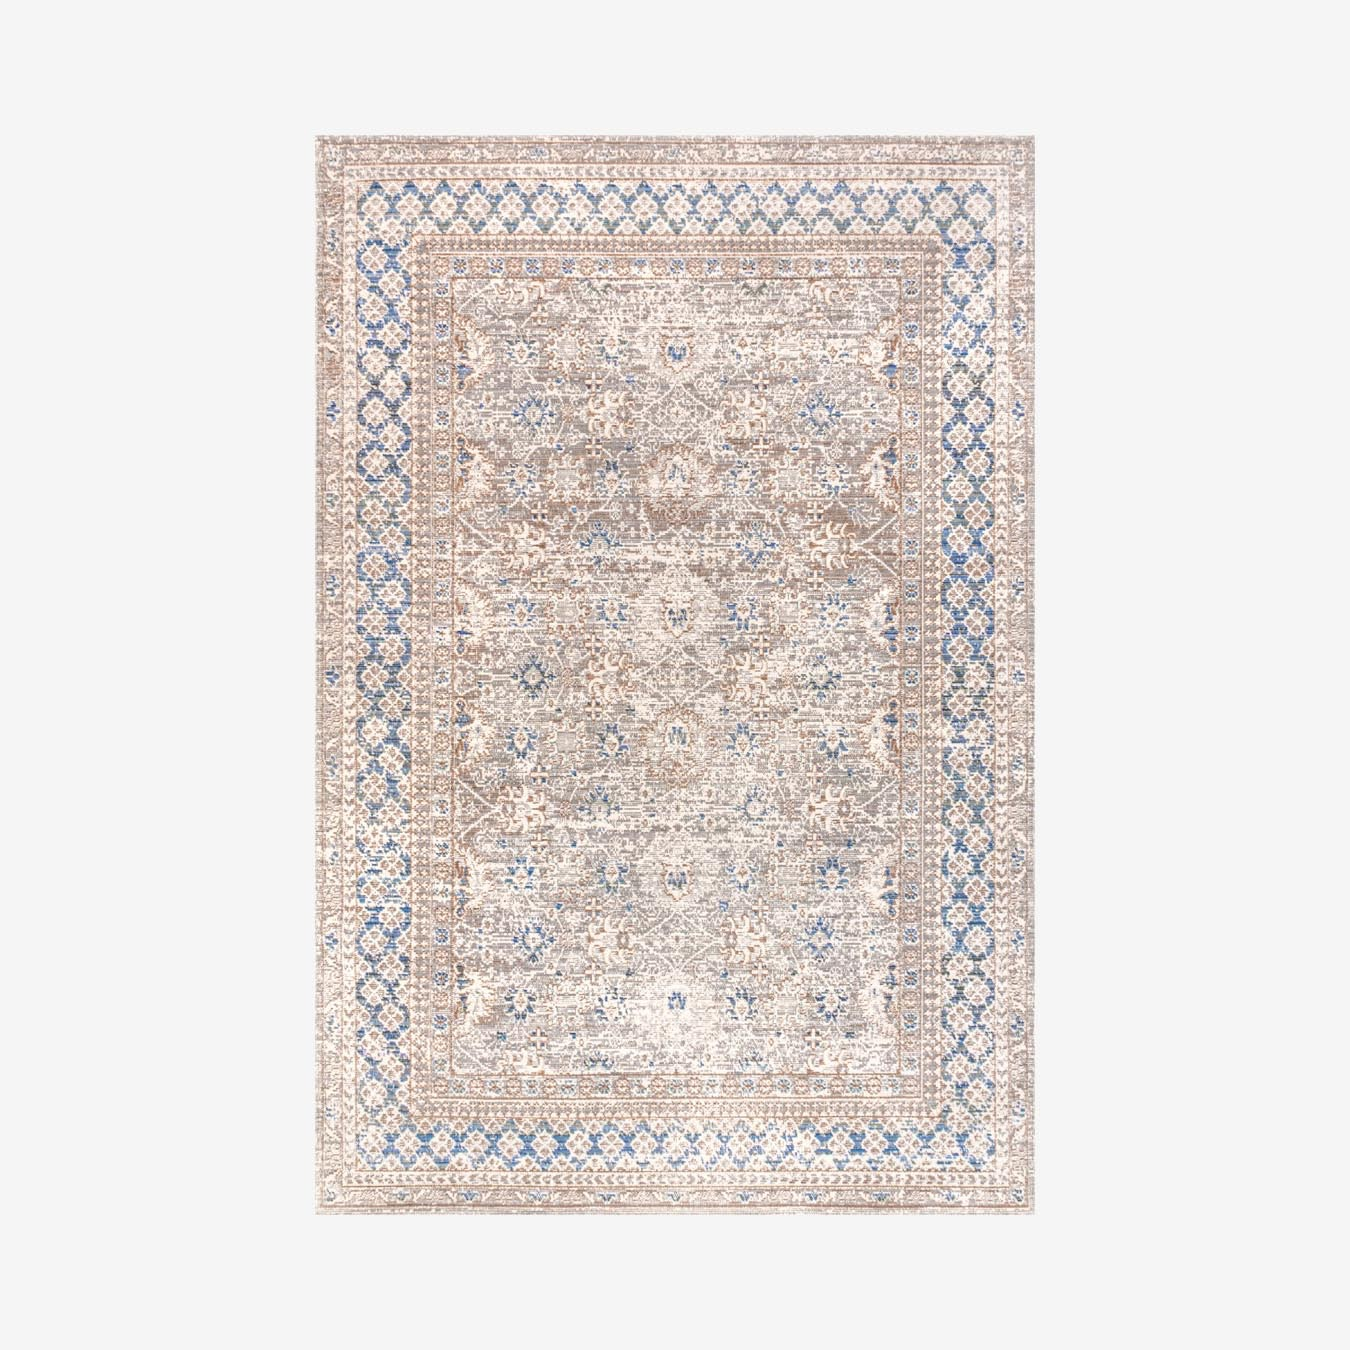 Hardwick English Country Argyle Area Rug Grey Blue By Jonathan Y Fy